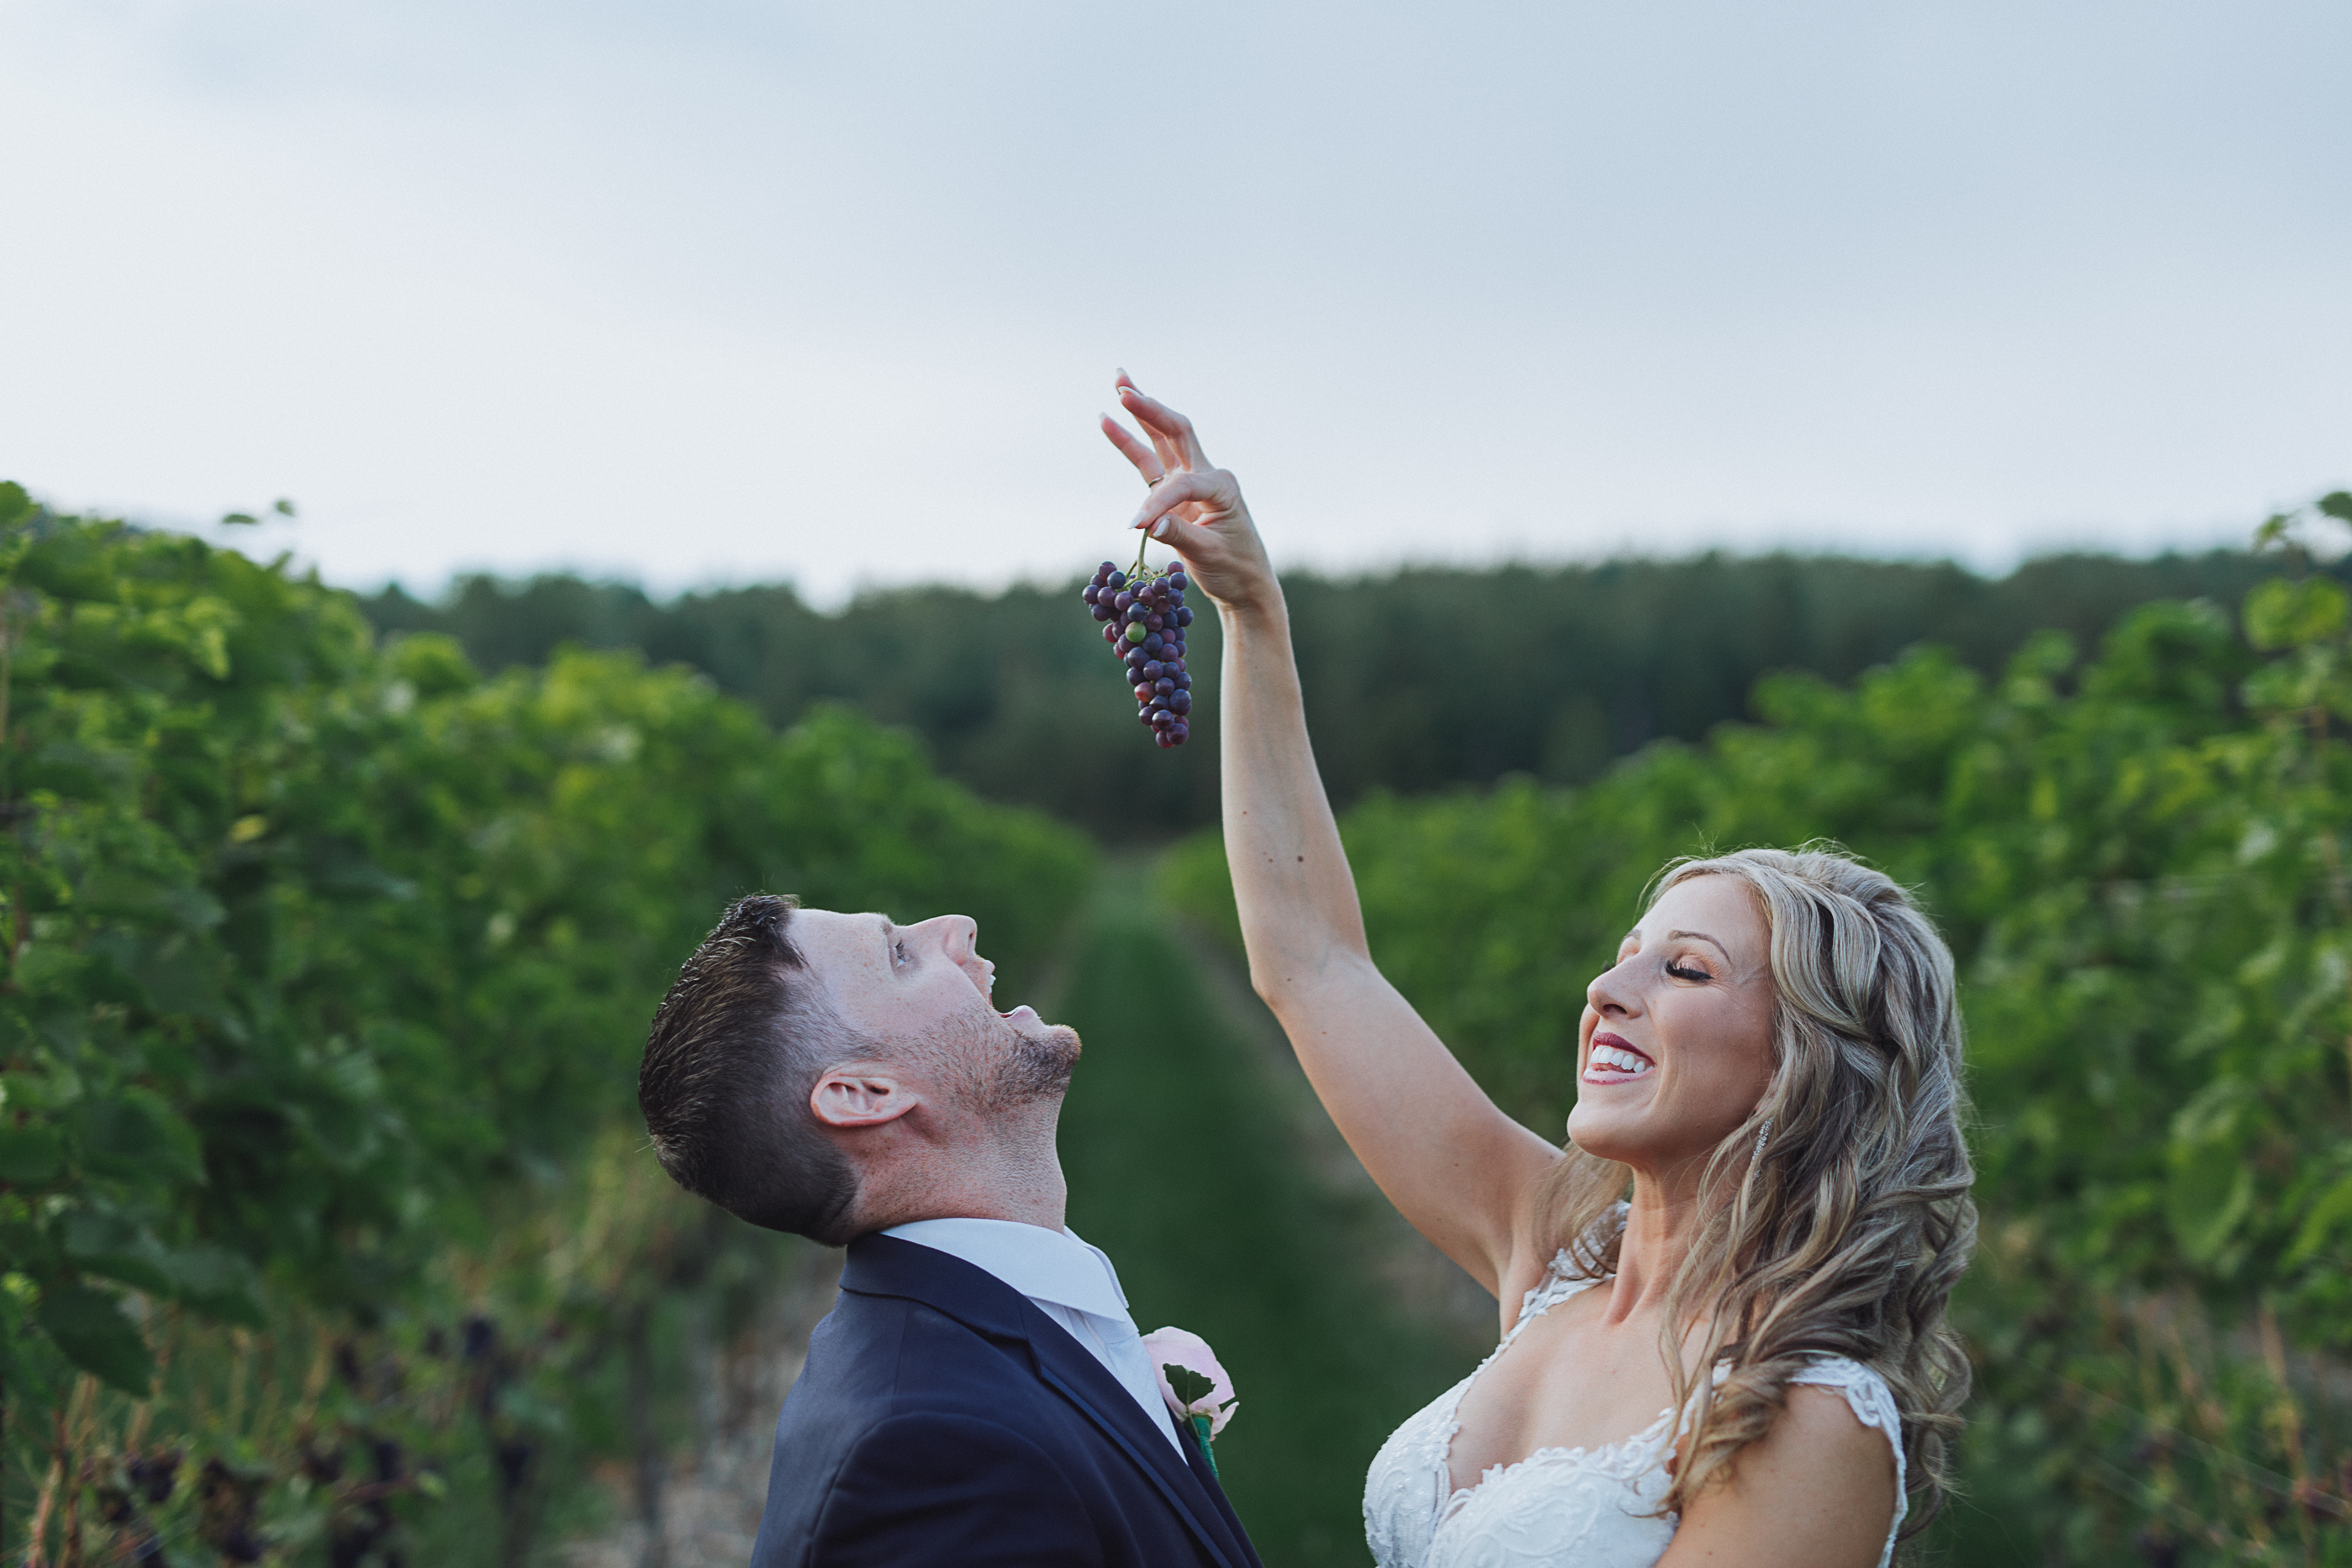 Having fun with grapes - New Brunswick winery wedding